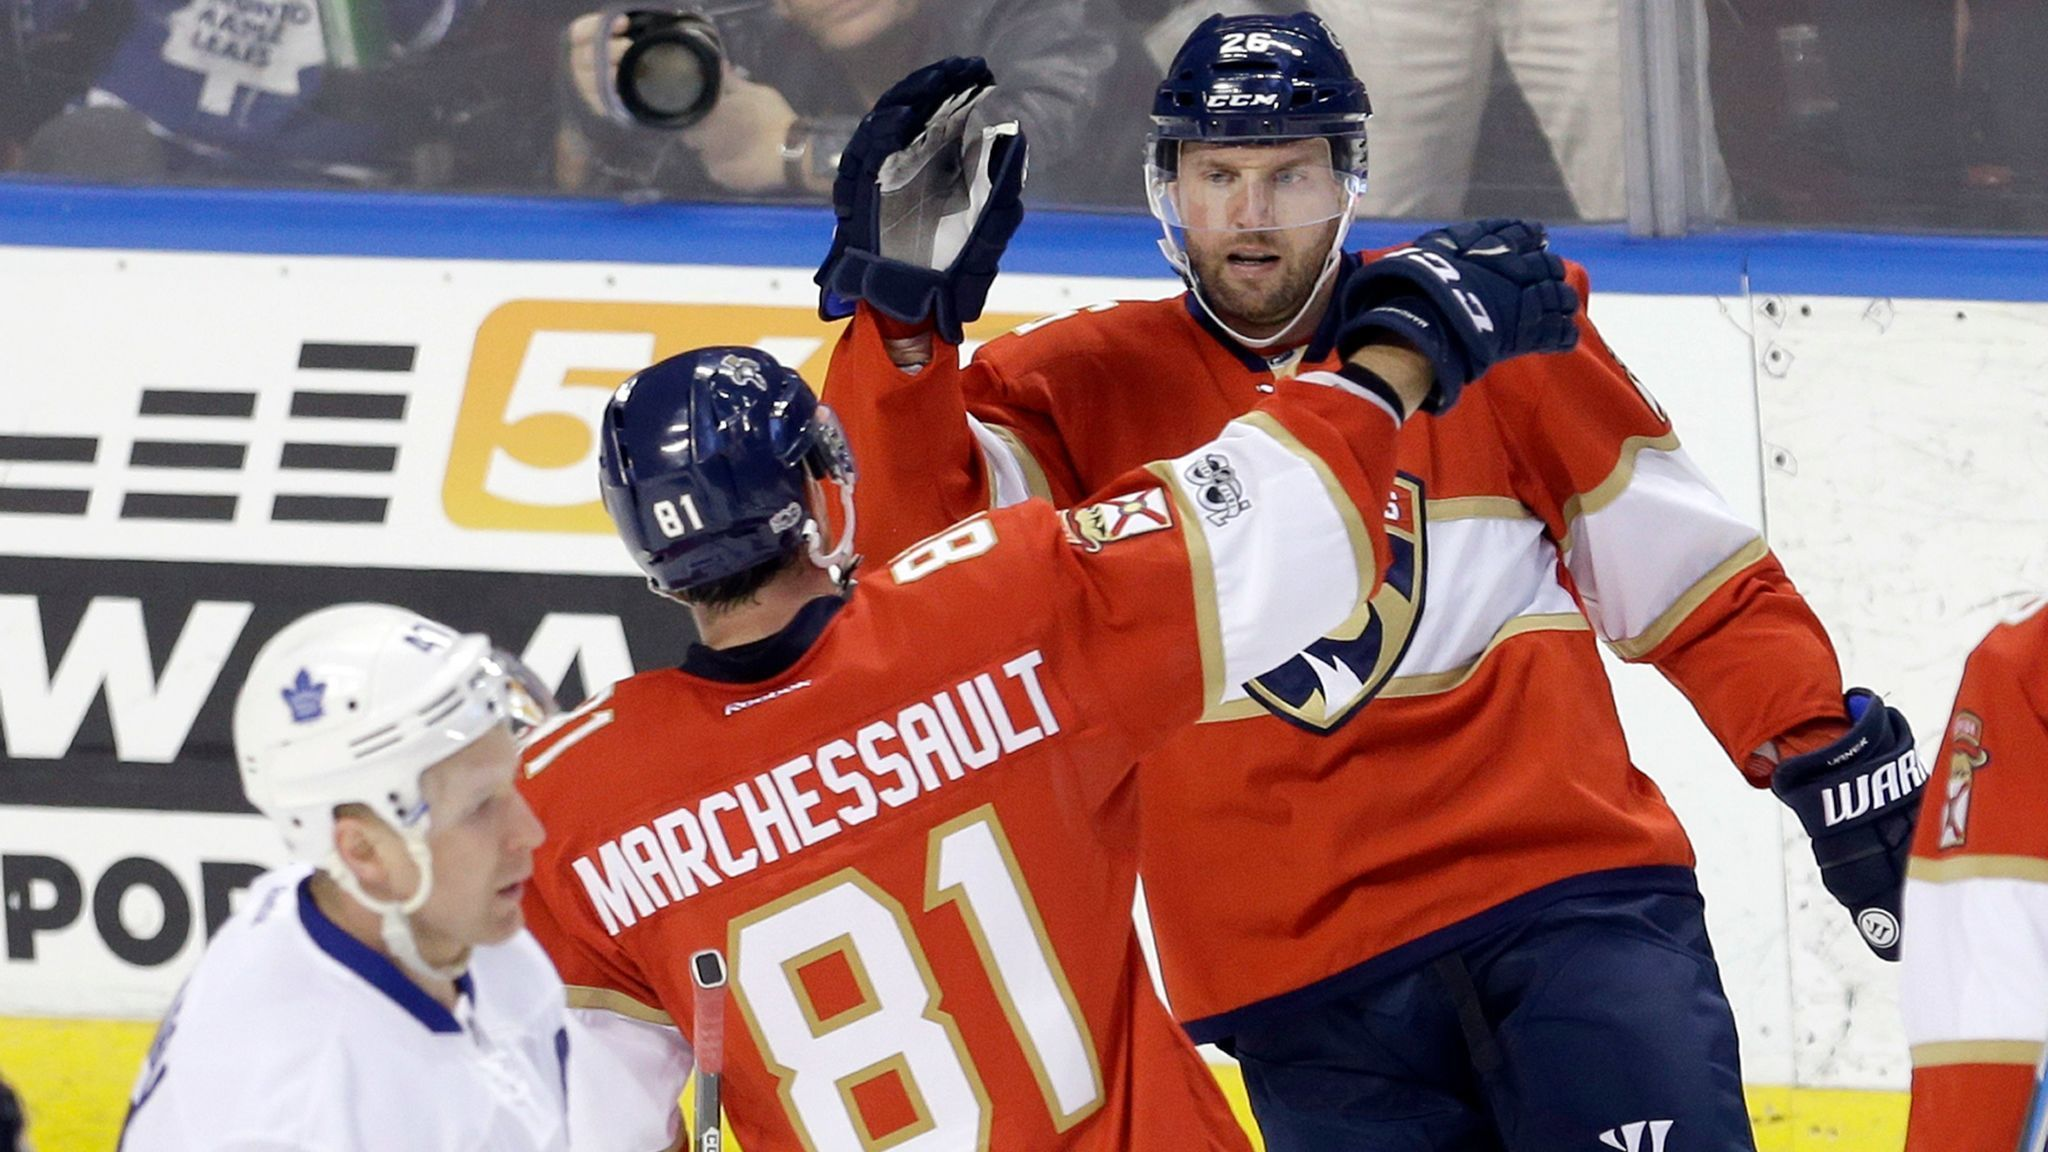 8fe87c3c4a4 Panthers erupt in 7-2 win over Leafs to snap 5-game losing streak - Sun  Sentinel